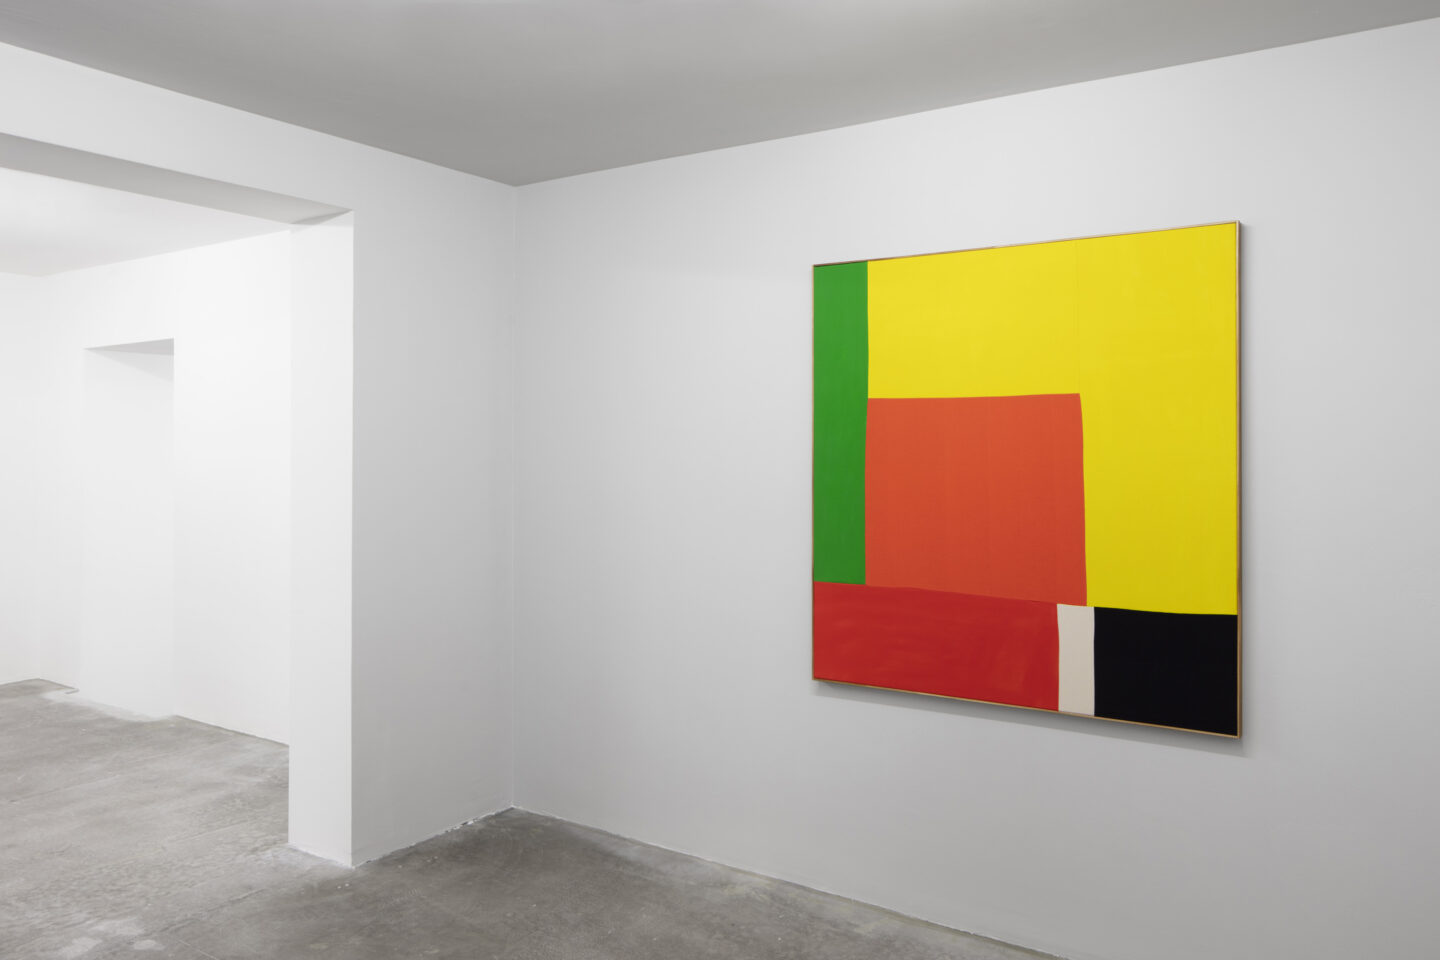 """Exhibition View Ethan Cook Soloshow """"Sets"""" at GALERIE PHILIPPZOLLINGER, Zurich, 2019 / Photo: Photo: Conradin Frei / Courtesy the artist and GALERIE PHILIPPZOLLINGER"""